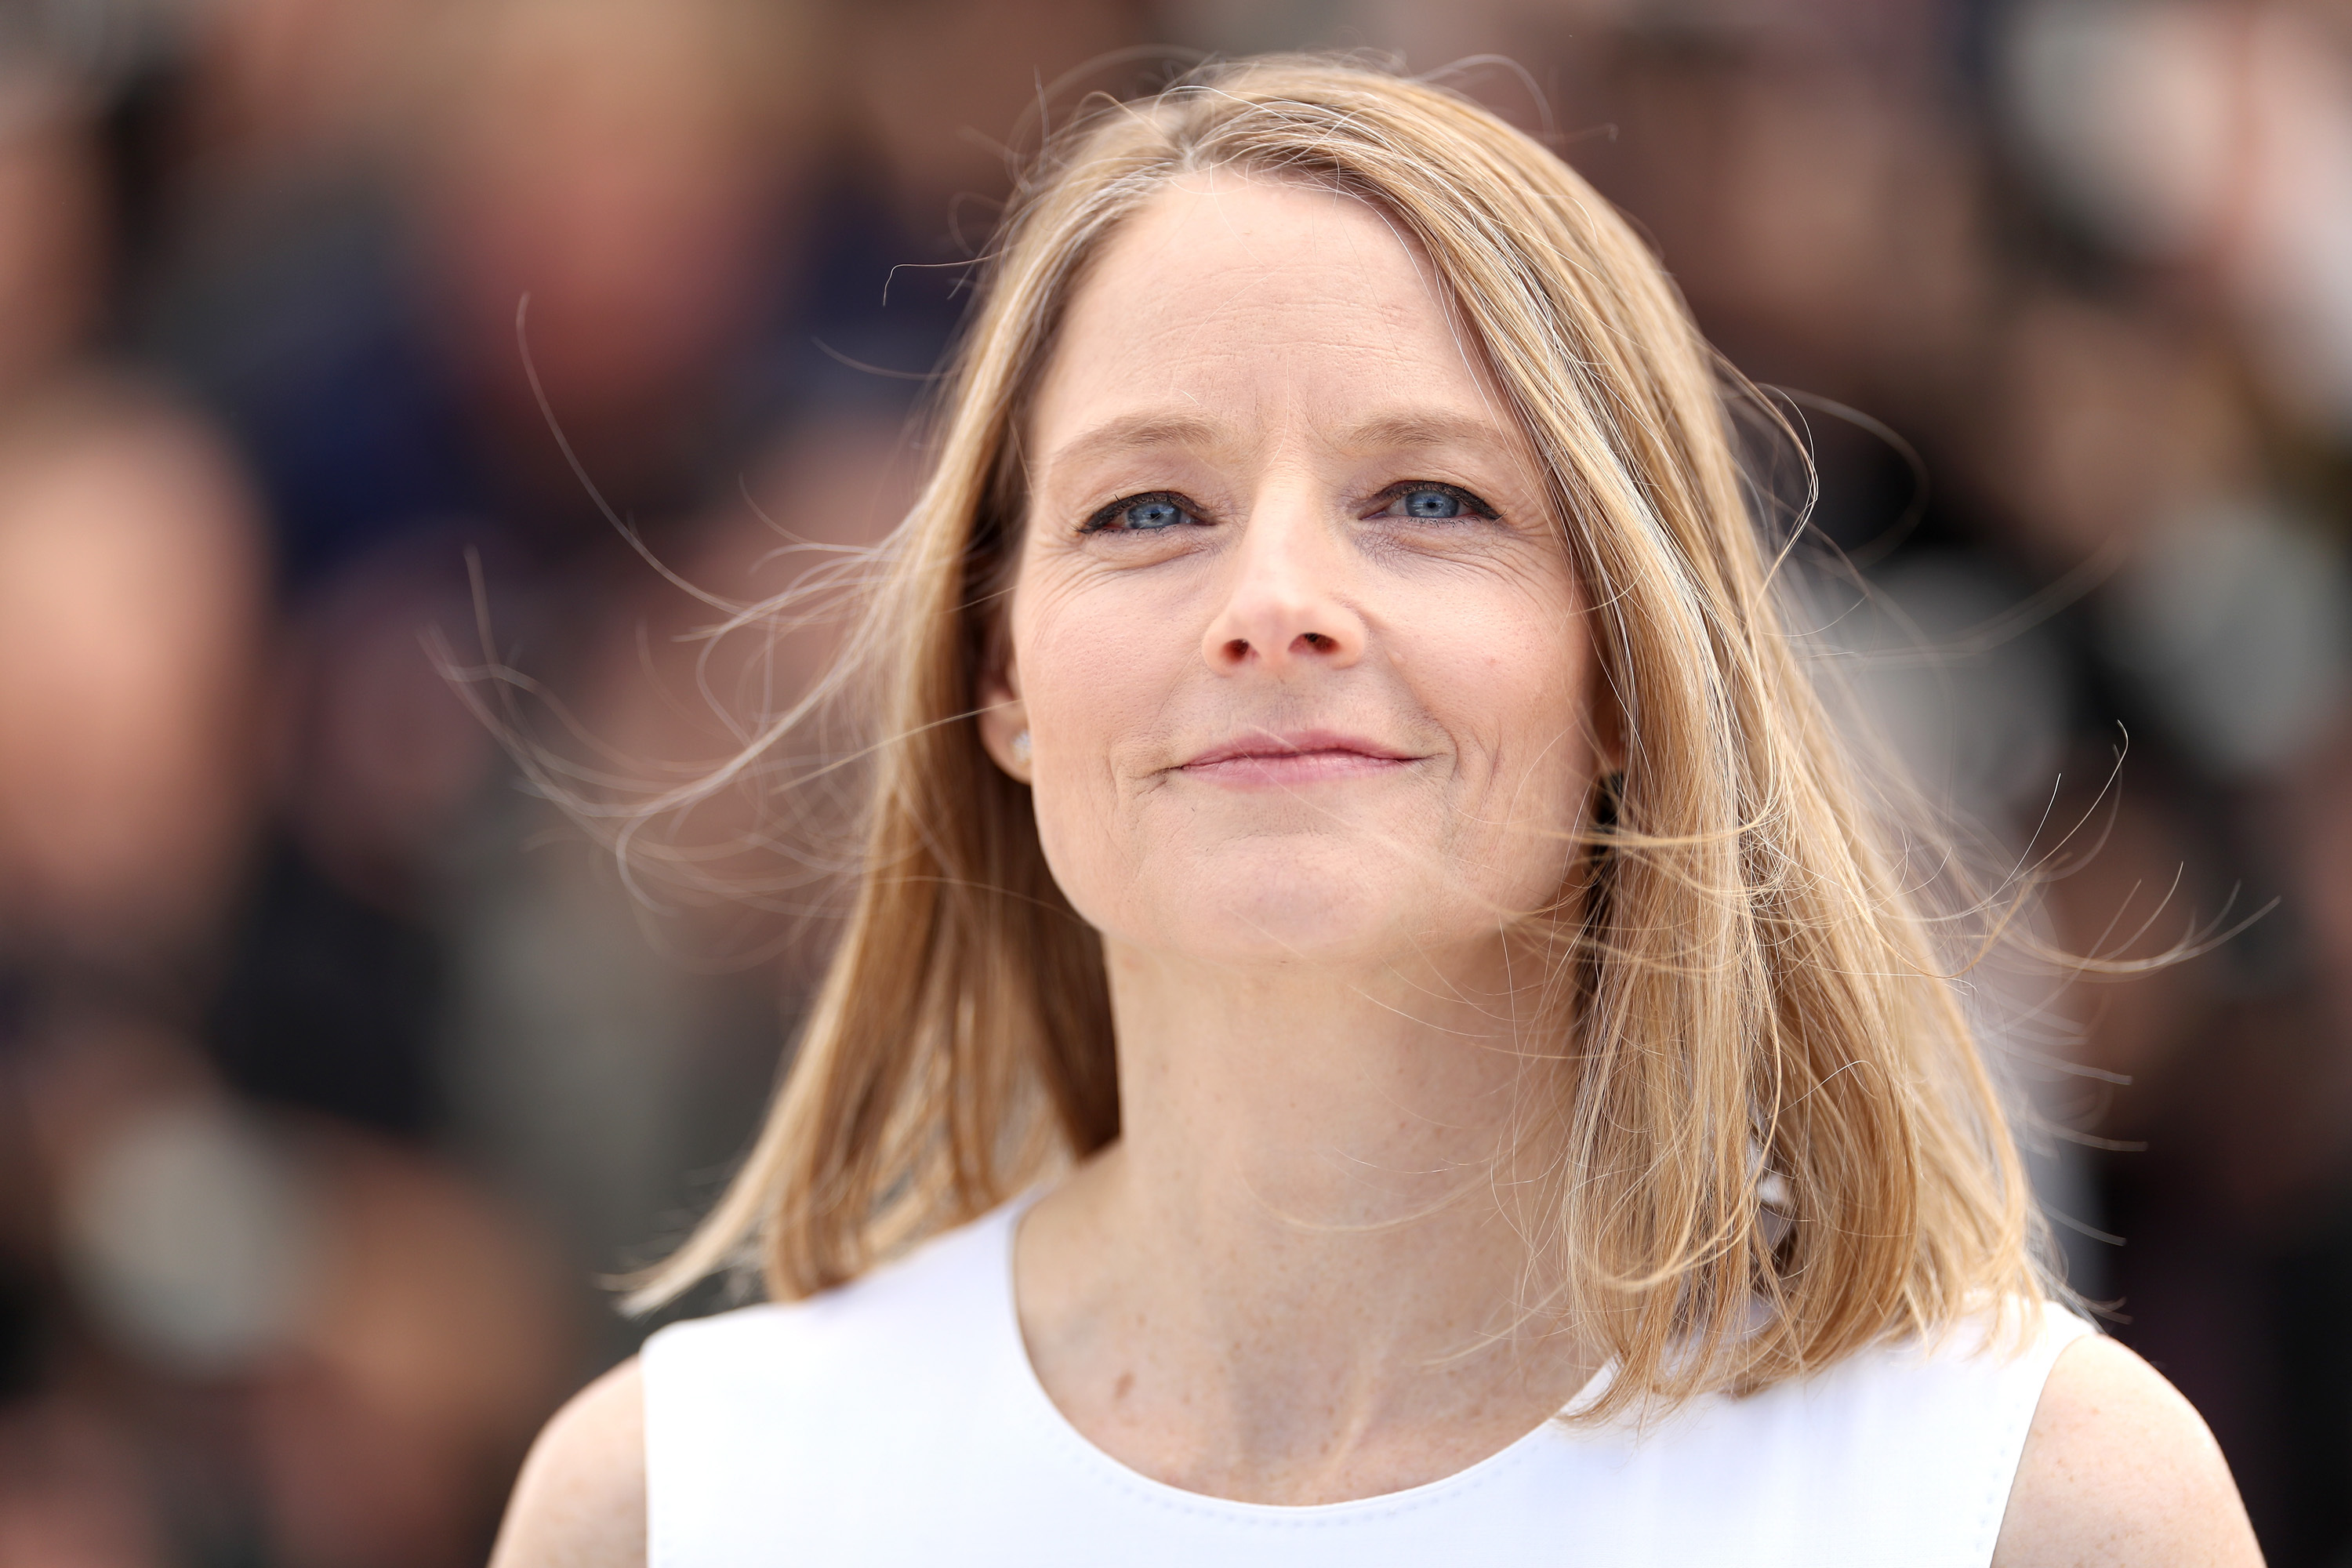 jodie foster wallpapers images photos pictures backgrounds. Black Bedroom Furniture Sets. Home Design Ideas